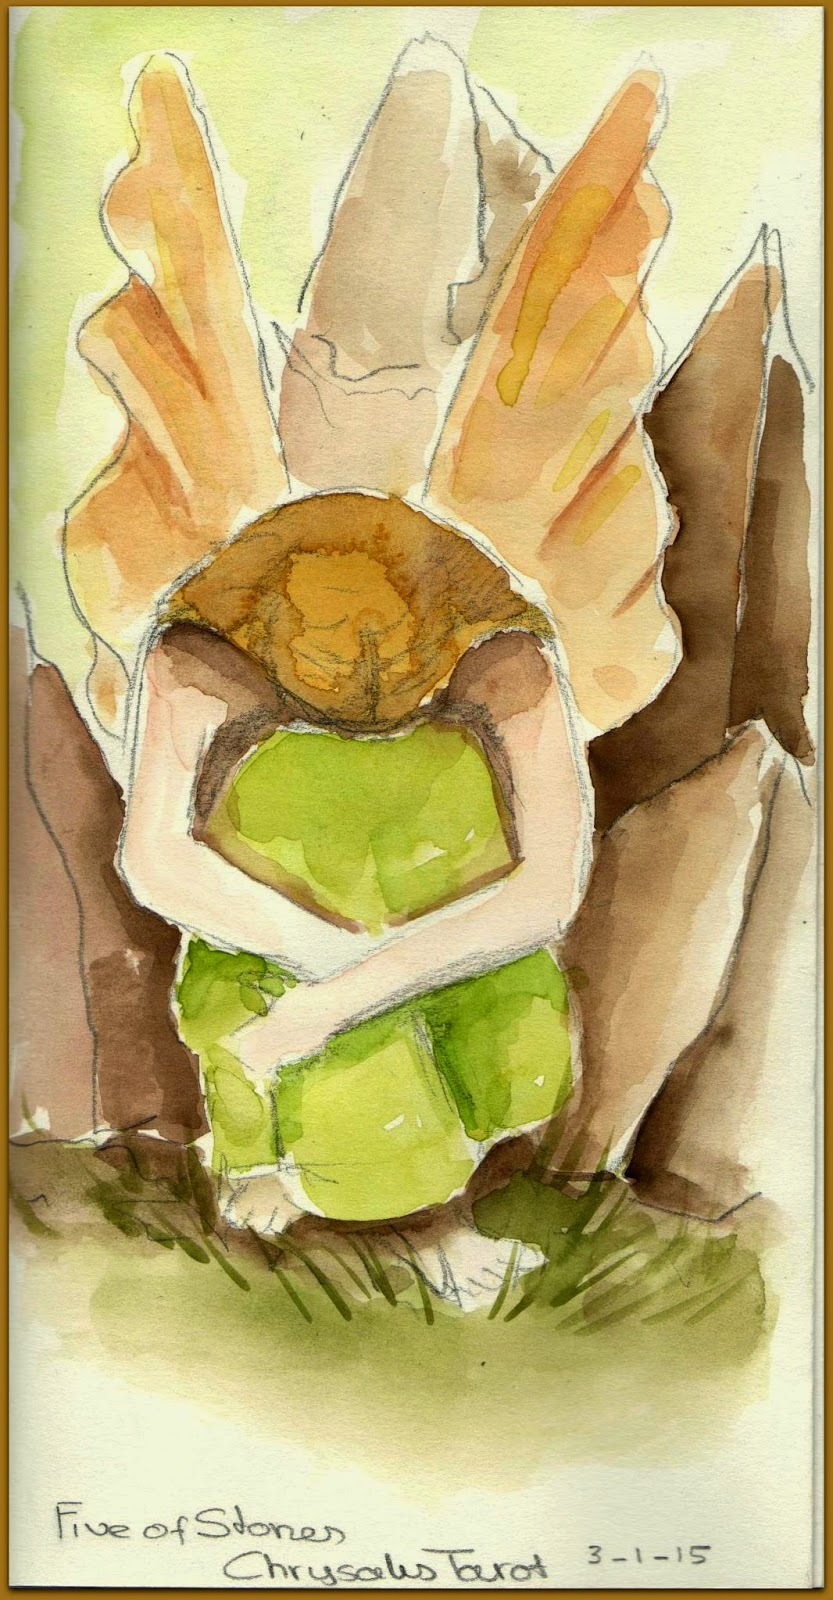 Chrysalis tarot Five of Stones aquarel